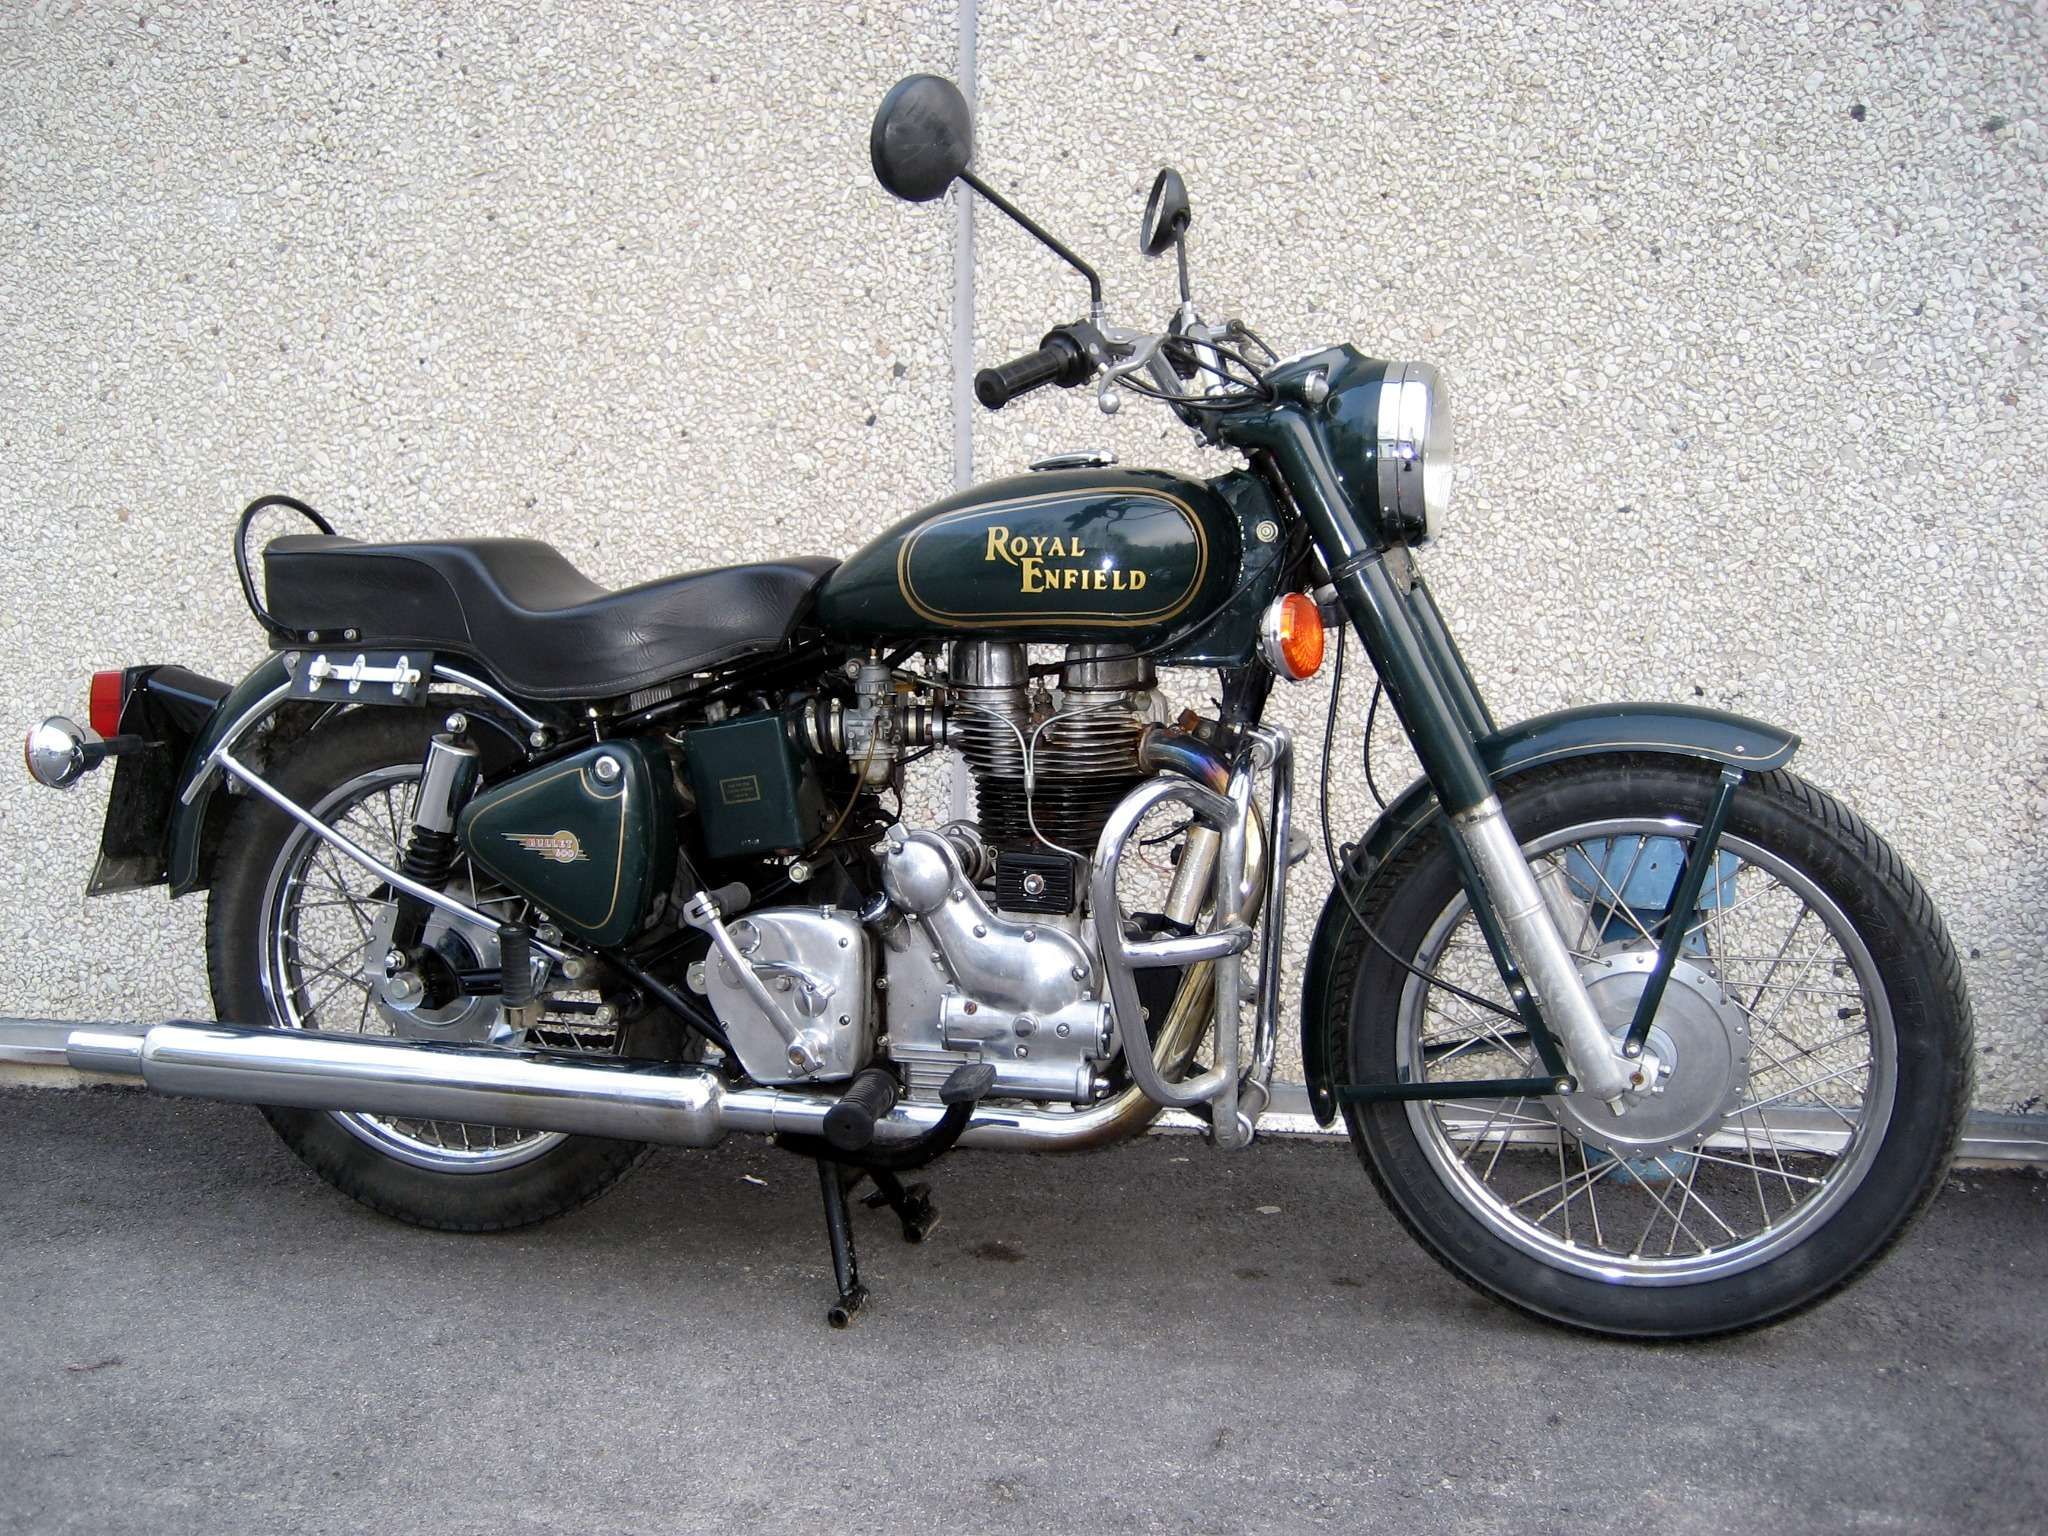 Can you ride a Enfield Bullet 500 with an A2 licence?